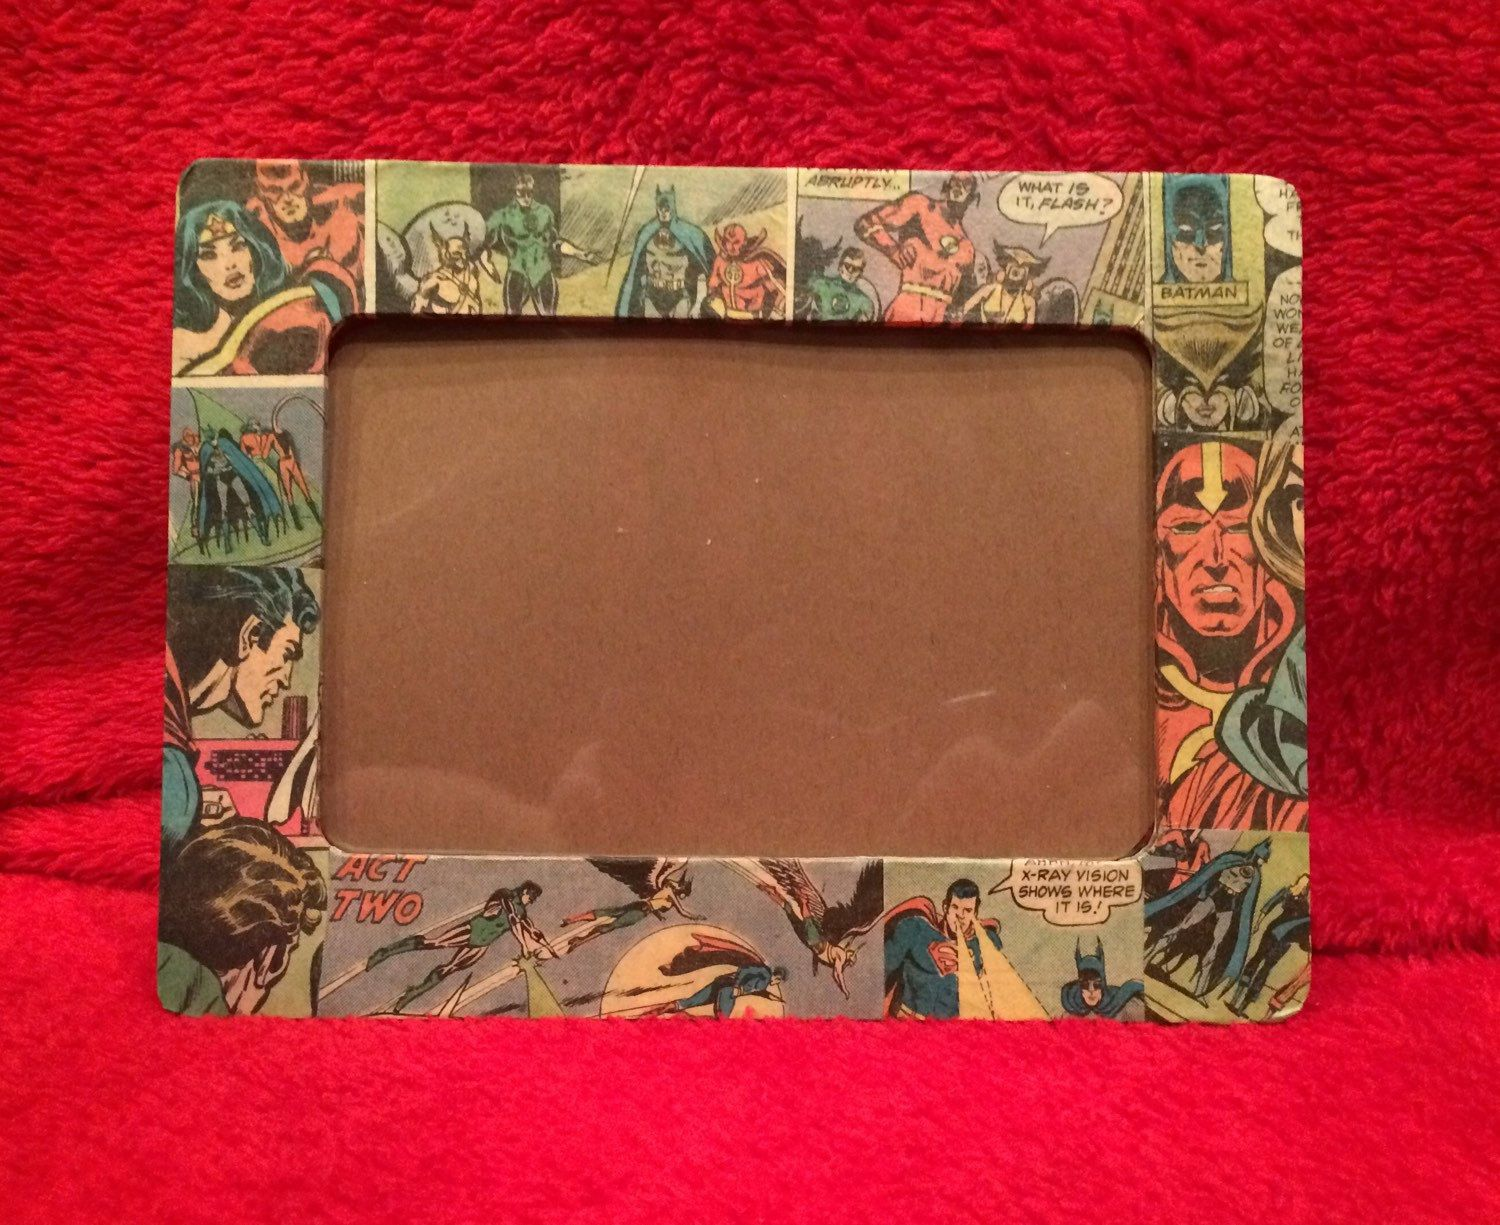 Justice League Comic Book Picture Frames by D2ComicsandMoreStore on Etsy https://www.etsy.com/listing/198960080/justice-league-comic-book-picture-frames